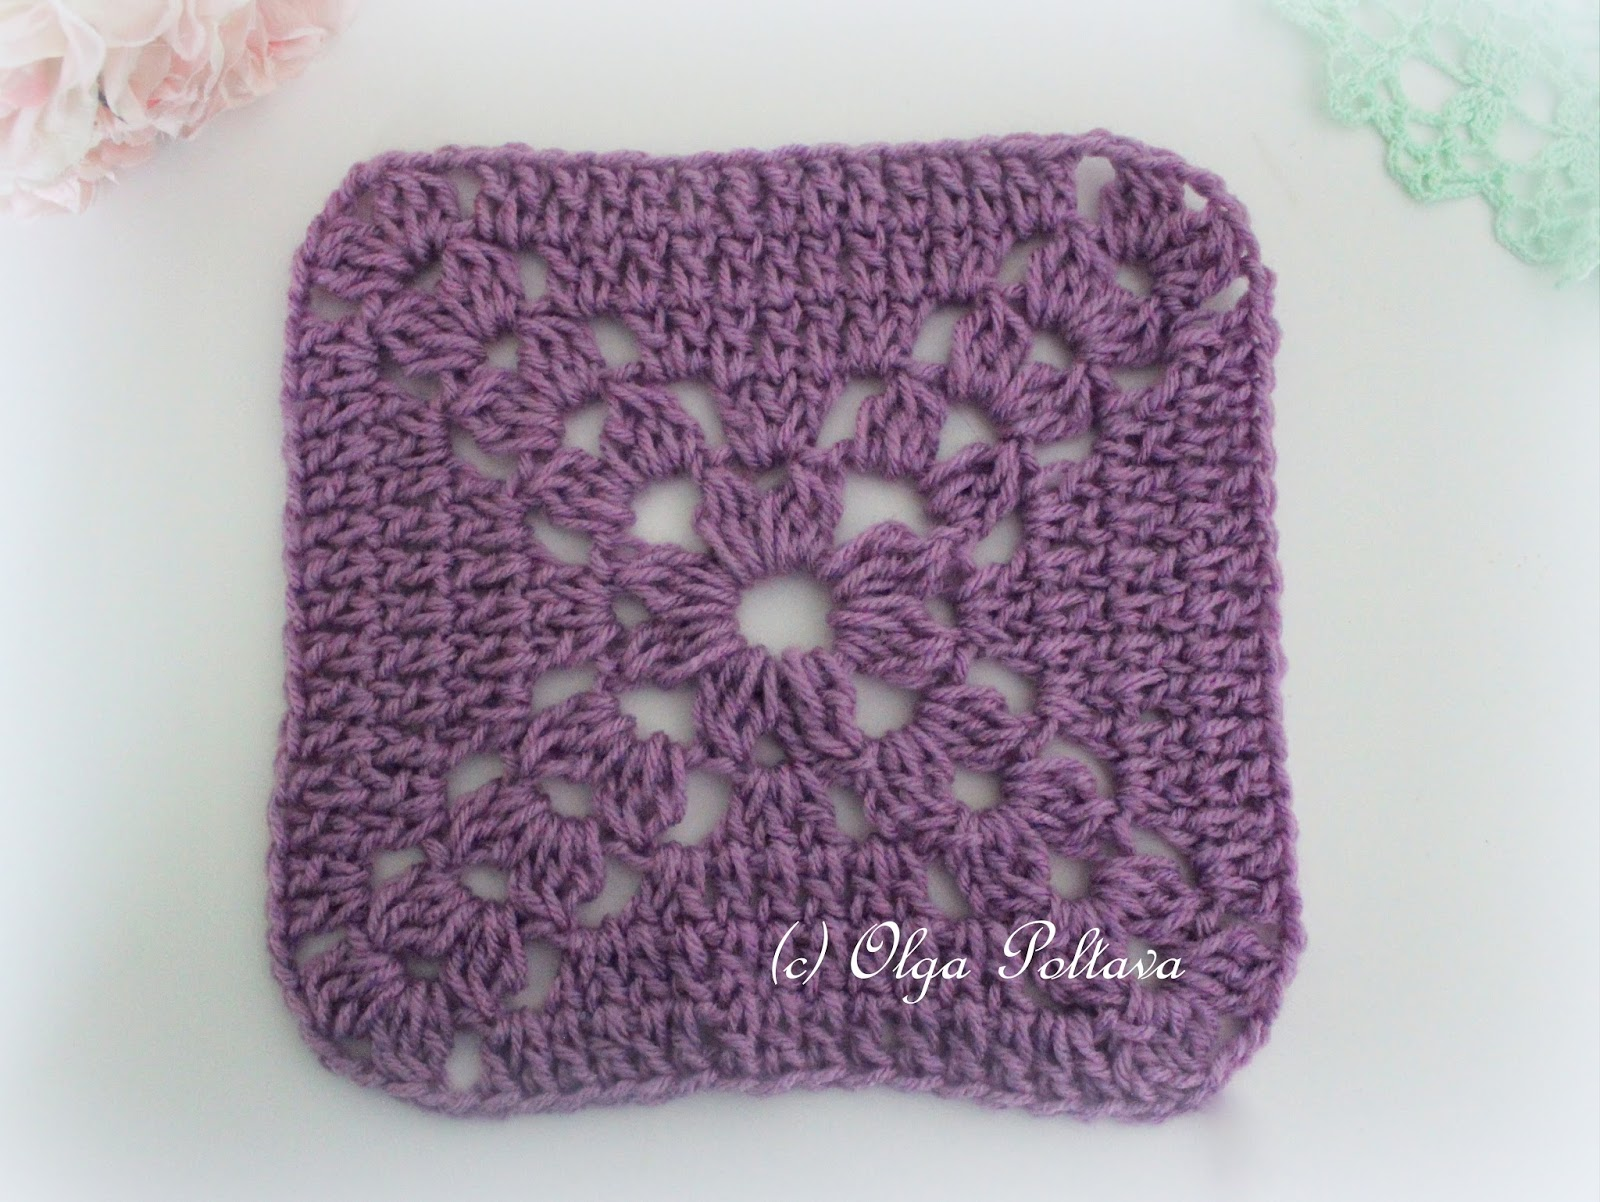 Free Crochet Square Pattern Diagram Emg 81 85 Pickup Wiring Lacy Simple